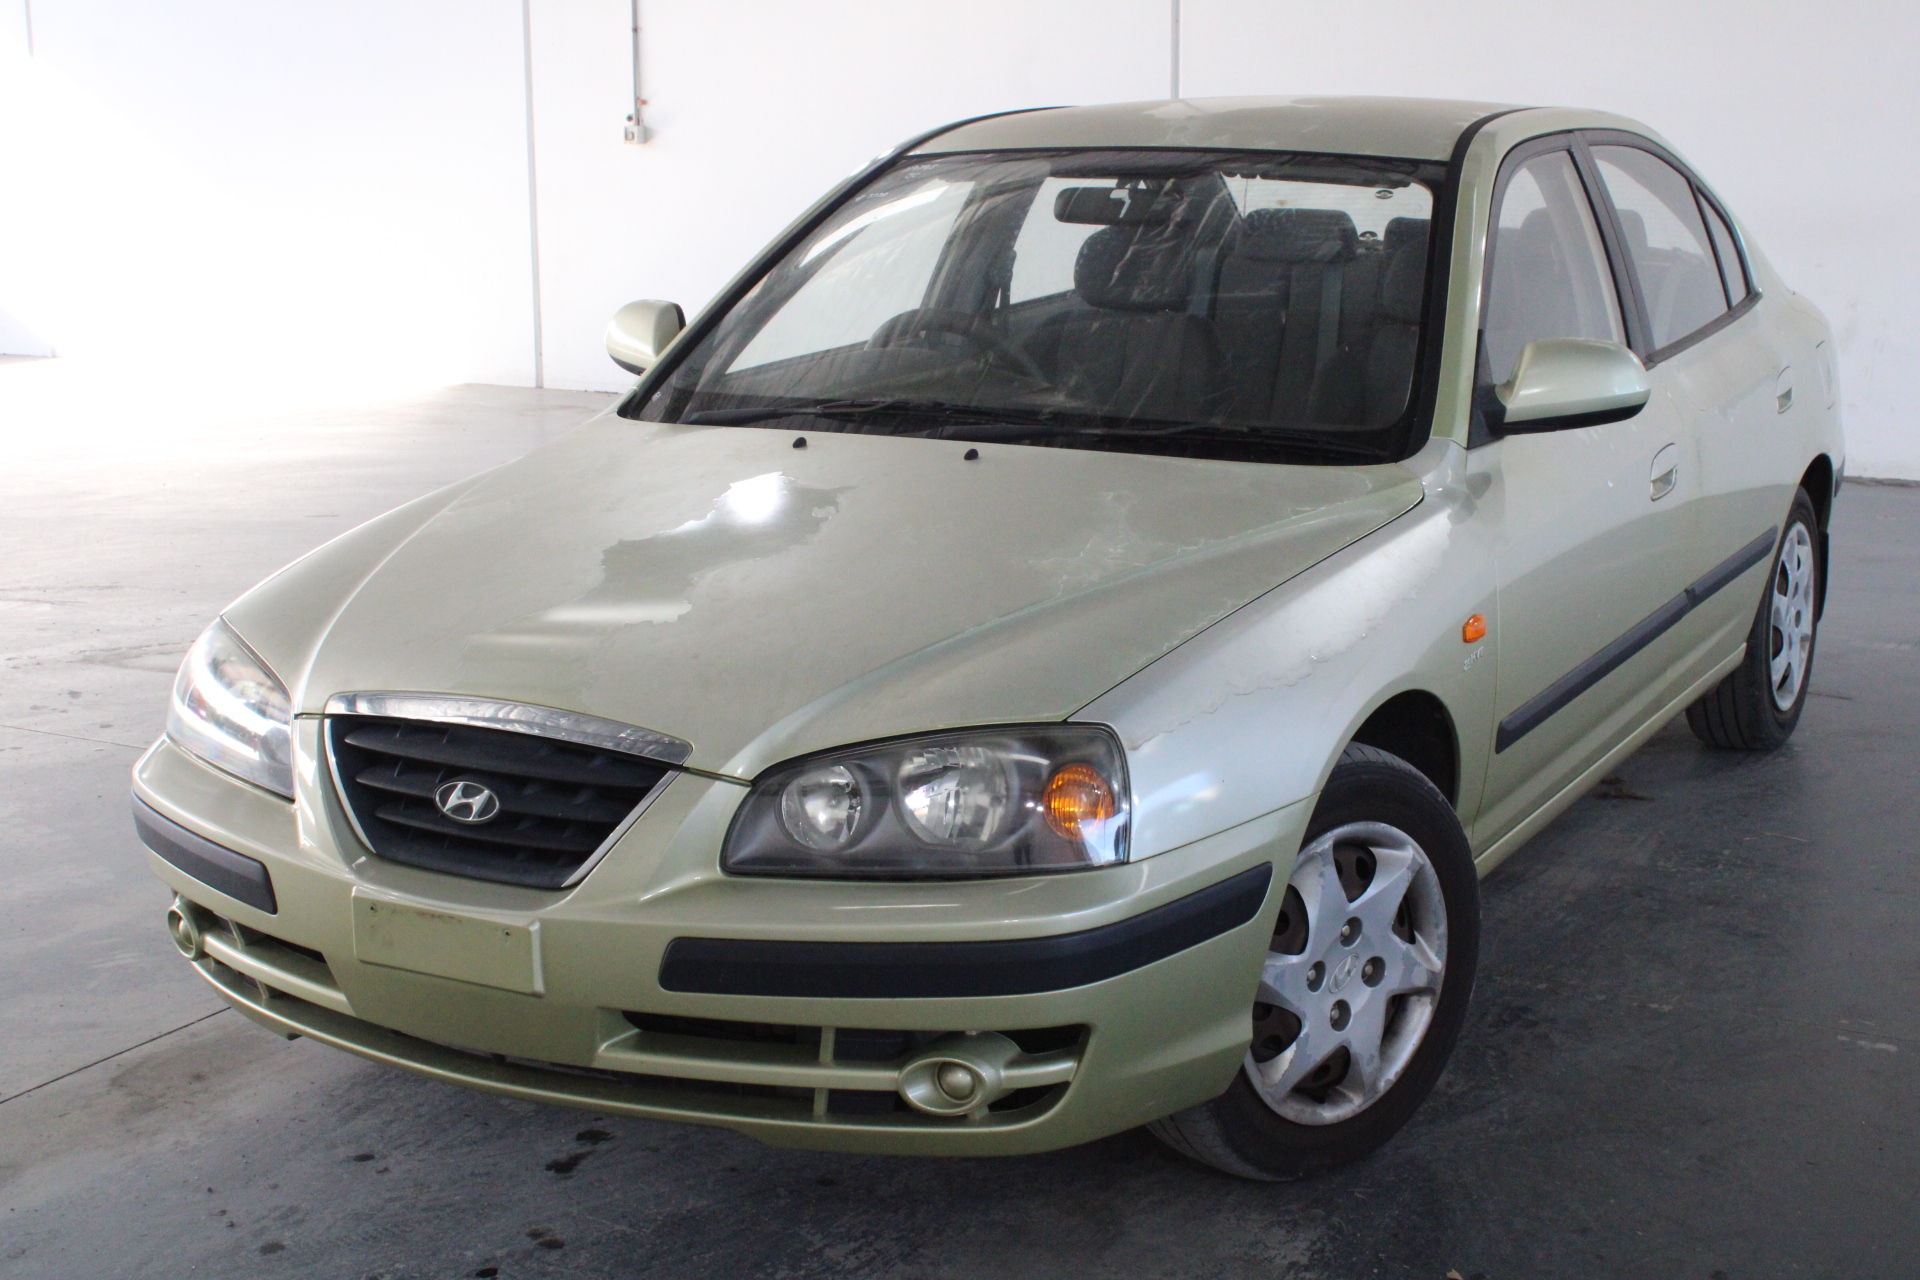 2005 Hyundai Elantra FX XD Manual Sedan